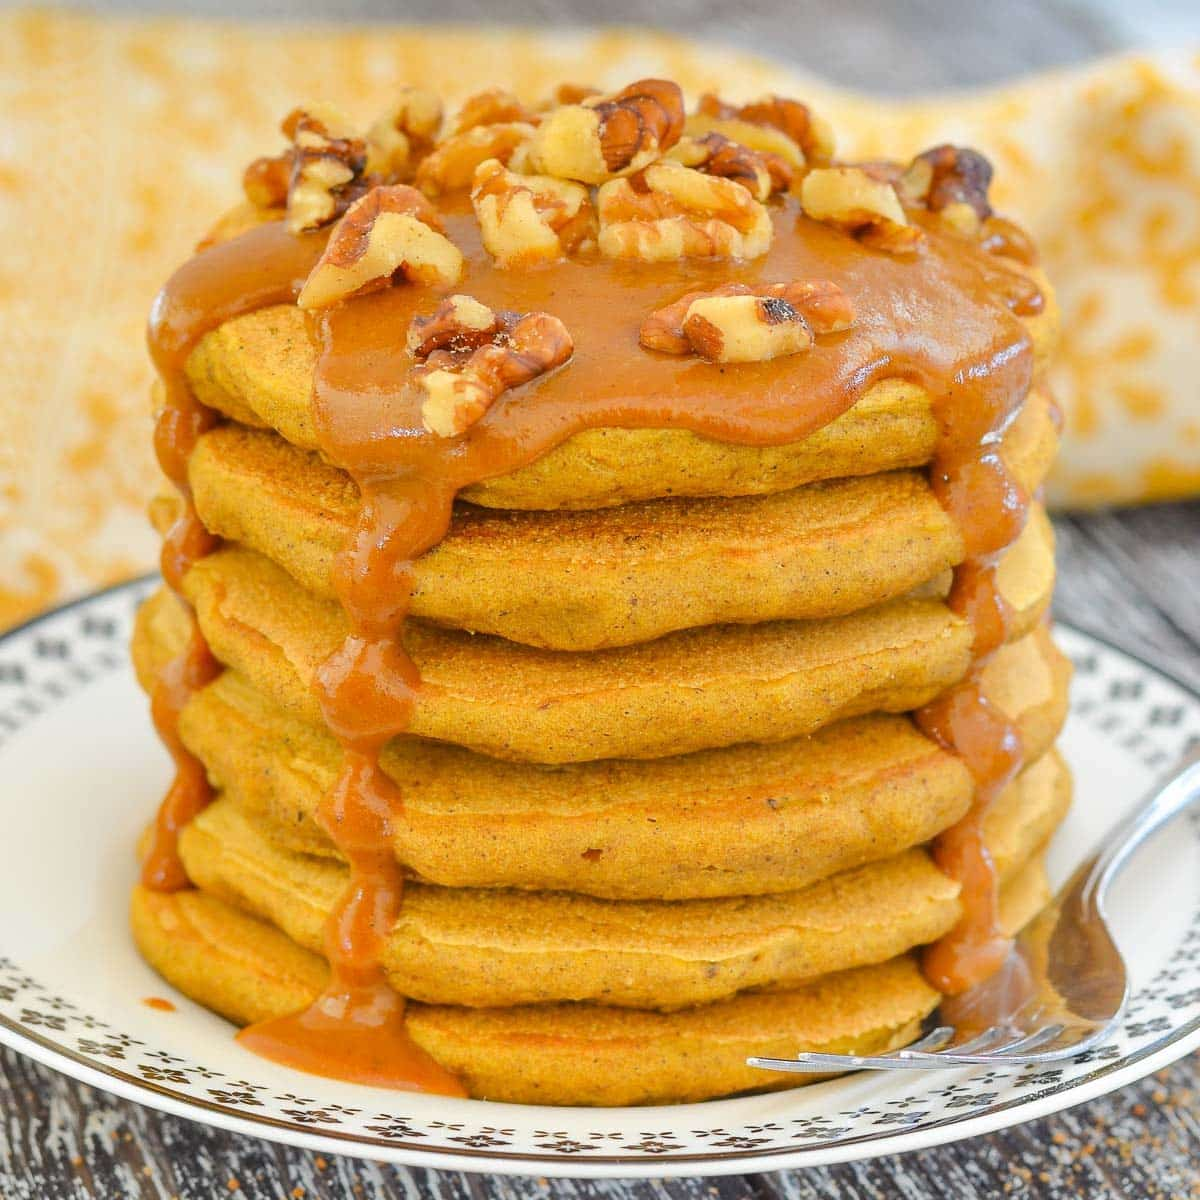 a stack of sweet potato pancakes with caramel and nuts